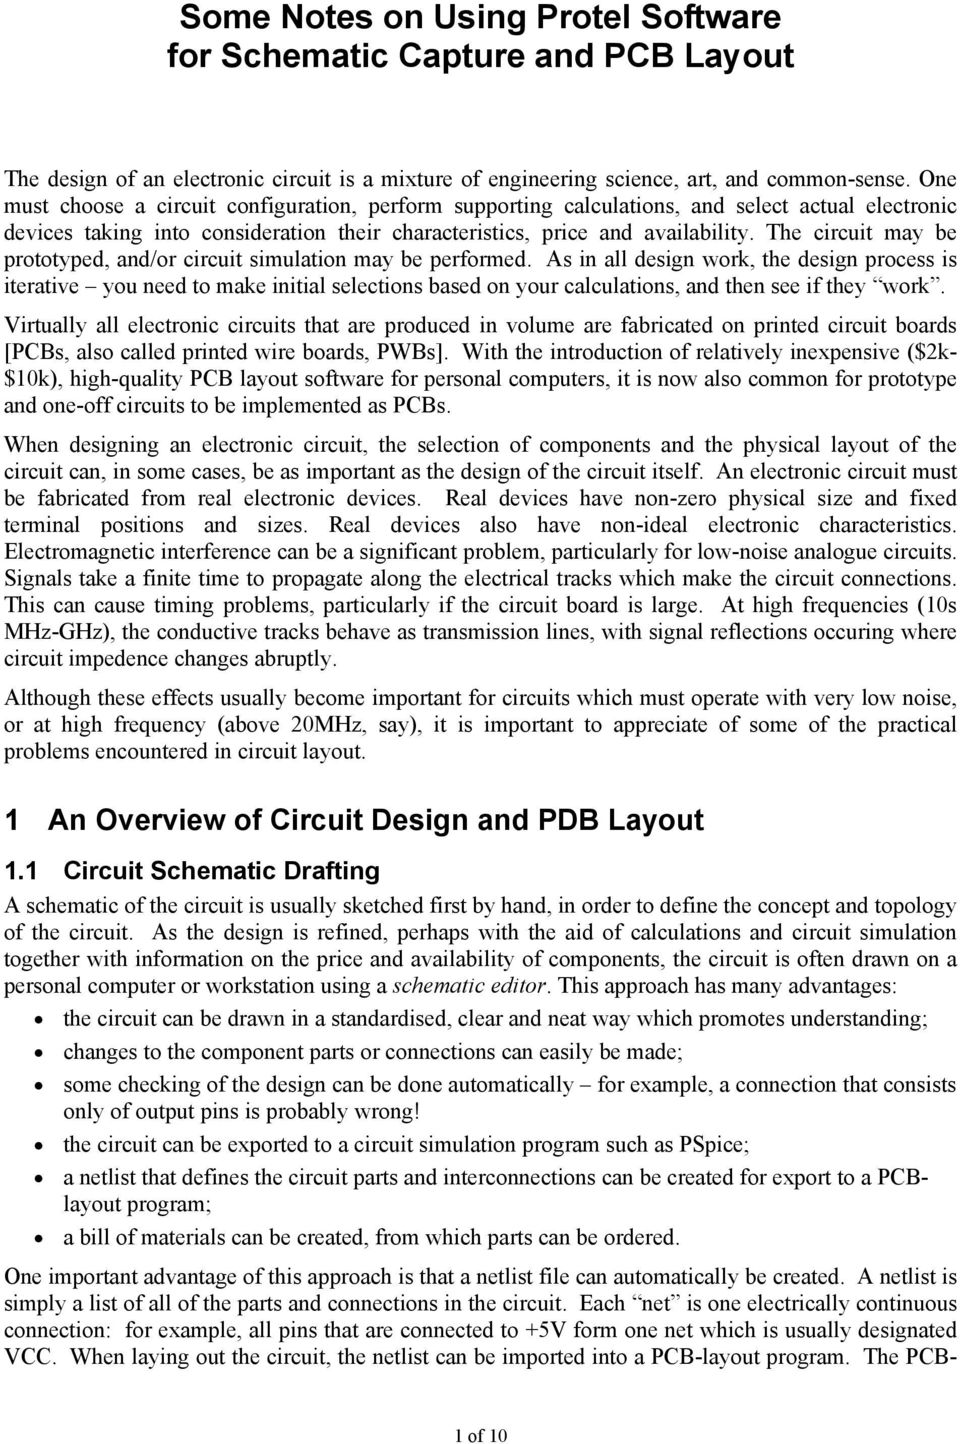 Some Notes On Using Protel Software For Schematic Capture And Pcb Parts Of An Electric Circuit The May Be Prototyped Or Simulation Performed